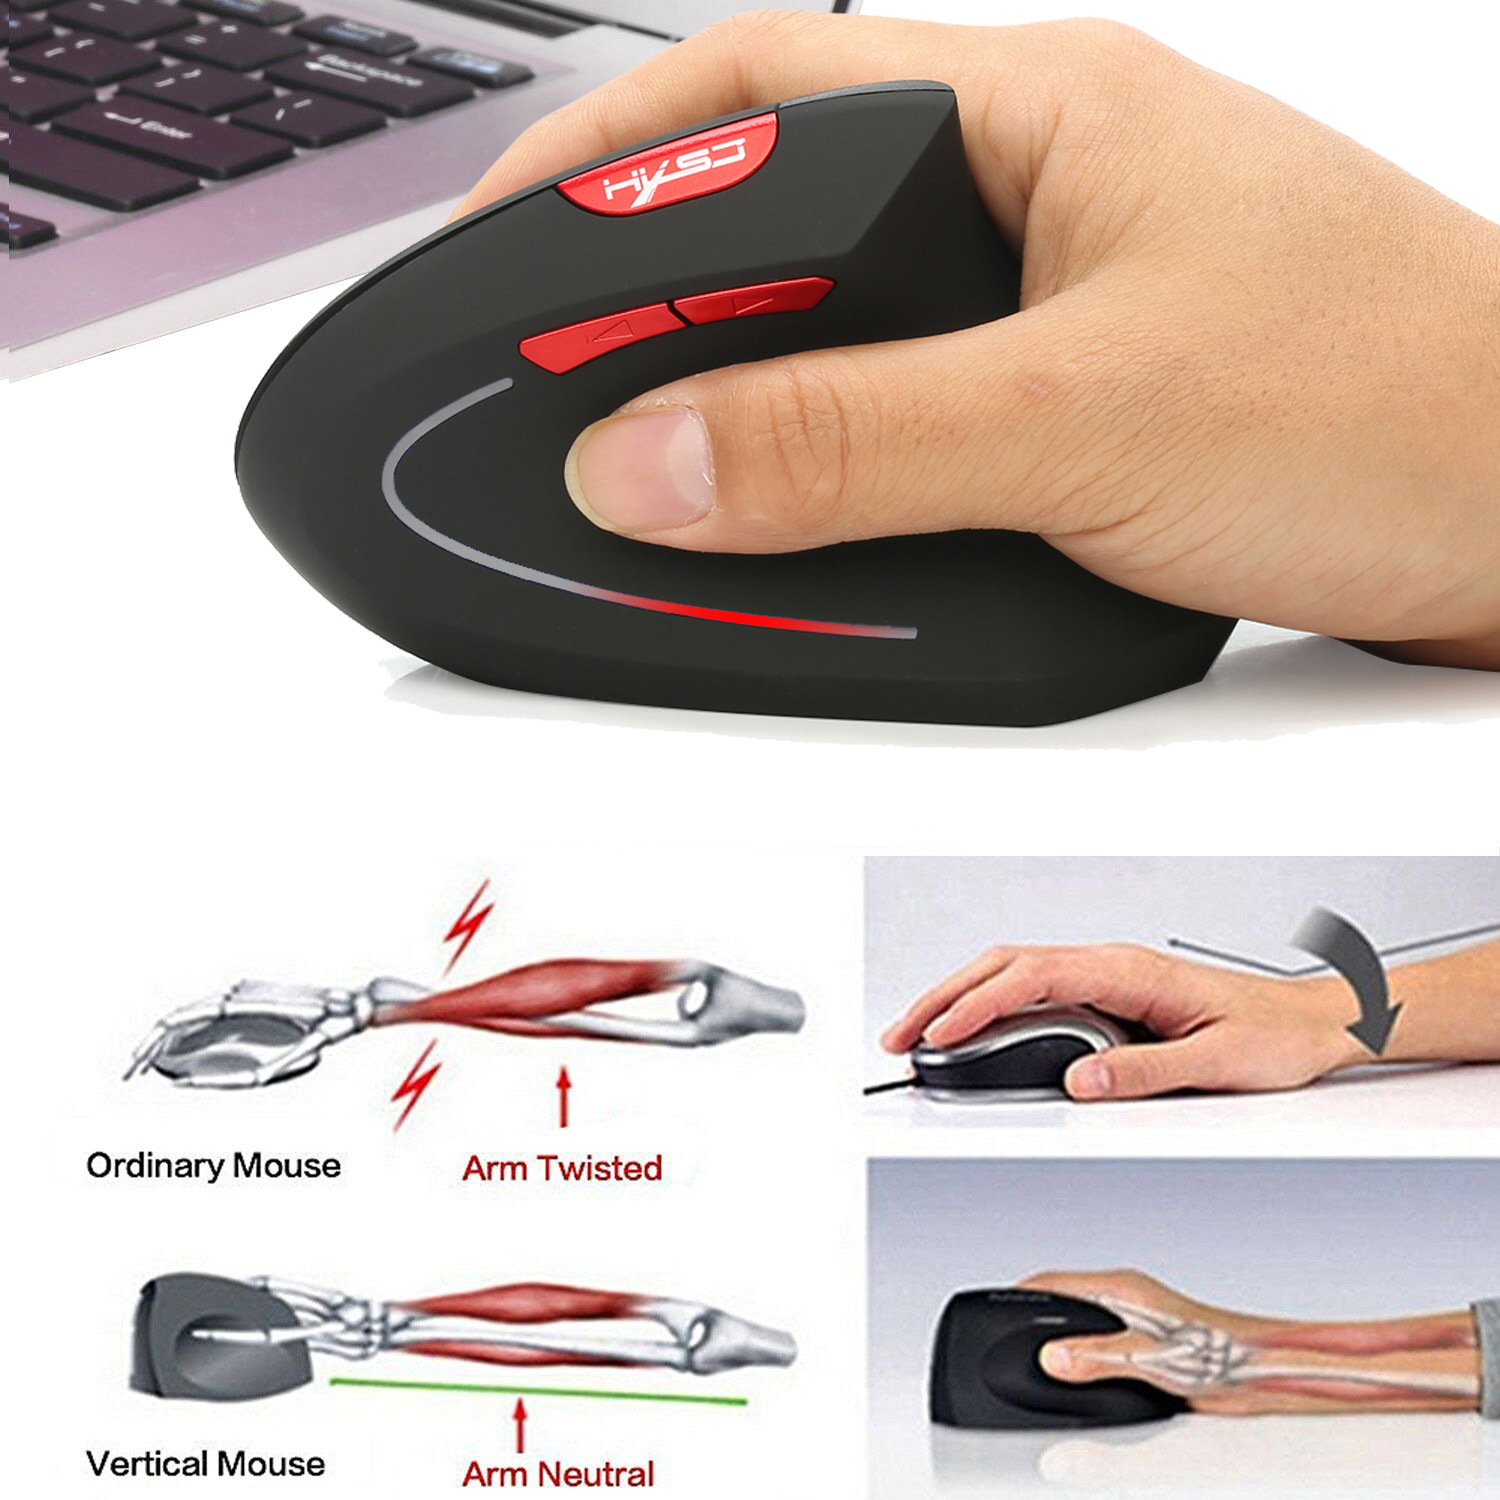 Fashion Wireless Bluetooth 3.0 Mouse 3 Speed DPI Adjustable For Laptop Computer Tablet Optical Laser Vertical Mouse For Macbook